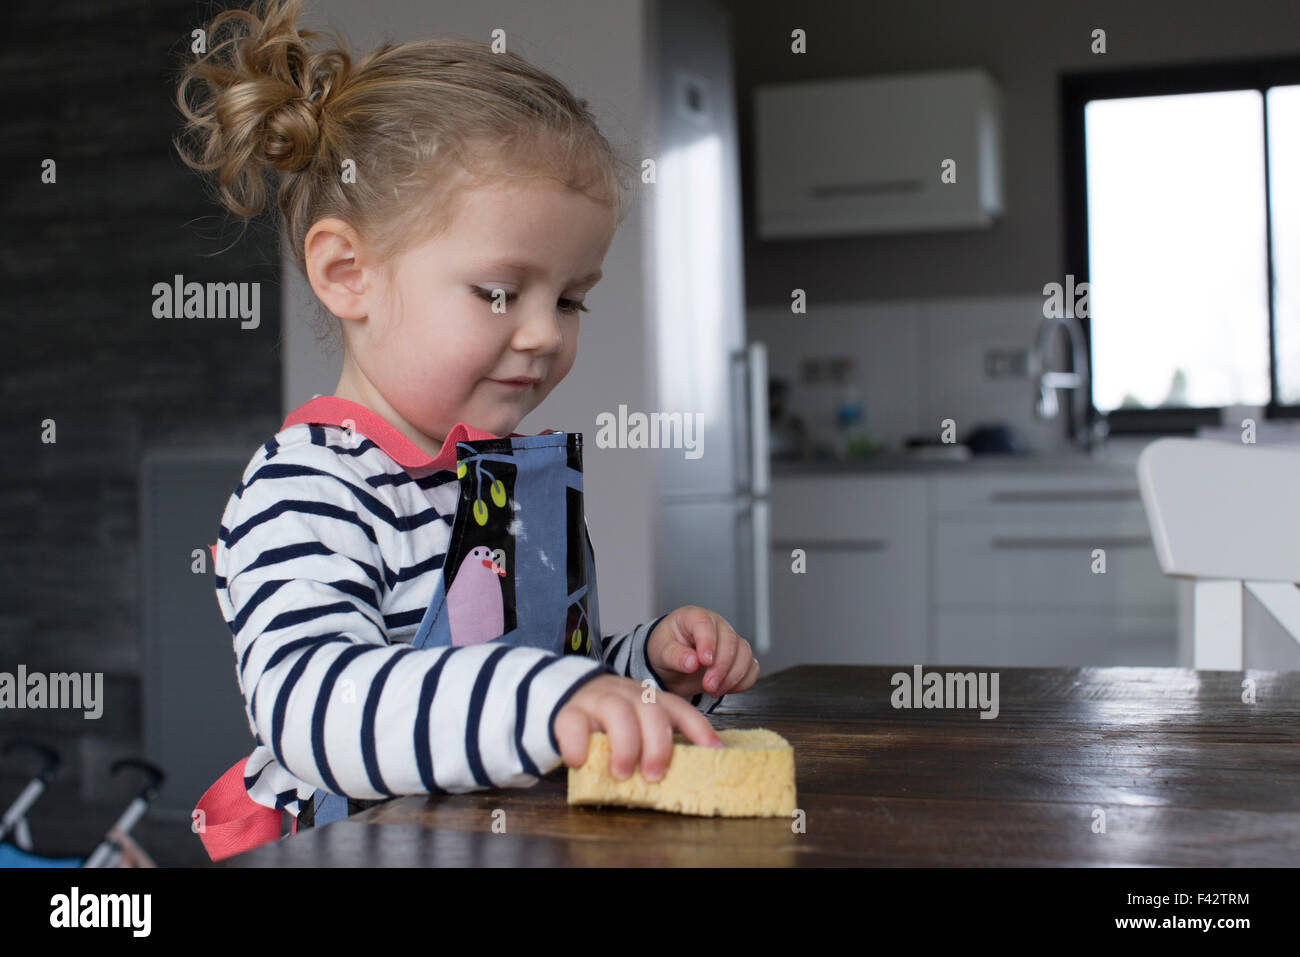 Little girl wiping table with sponge - Stock Image